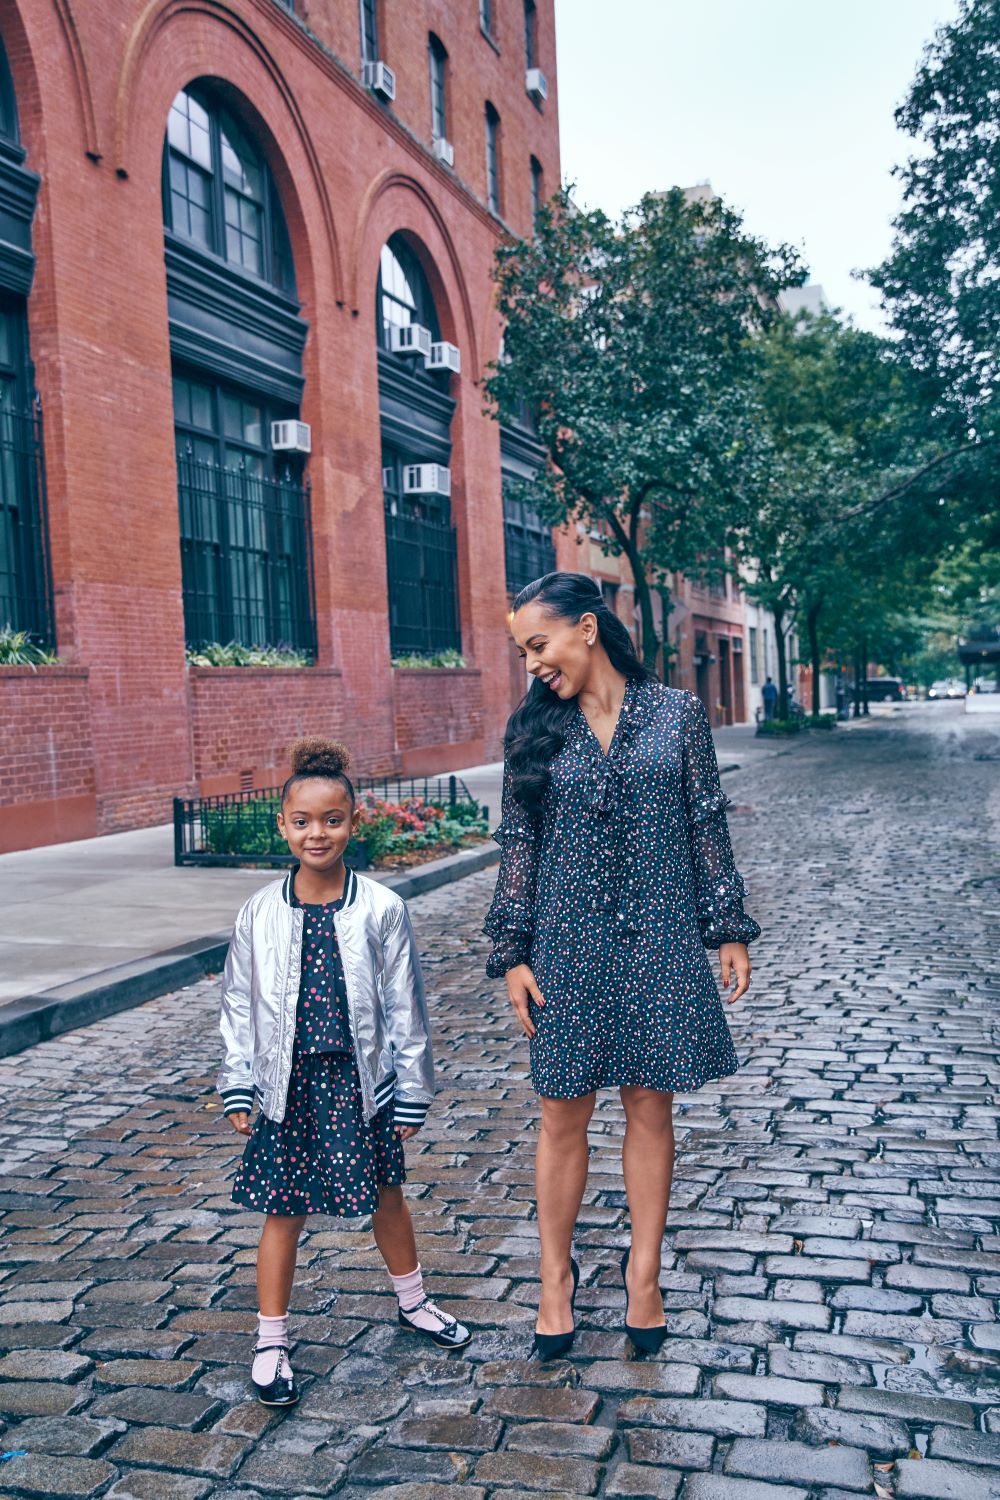 A holiday capsule collection combines DVF's high style, RoA's kids' expertise and the popularity of RTR rentals.